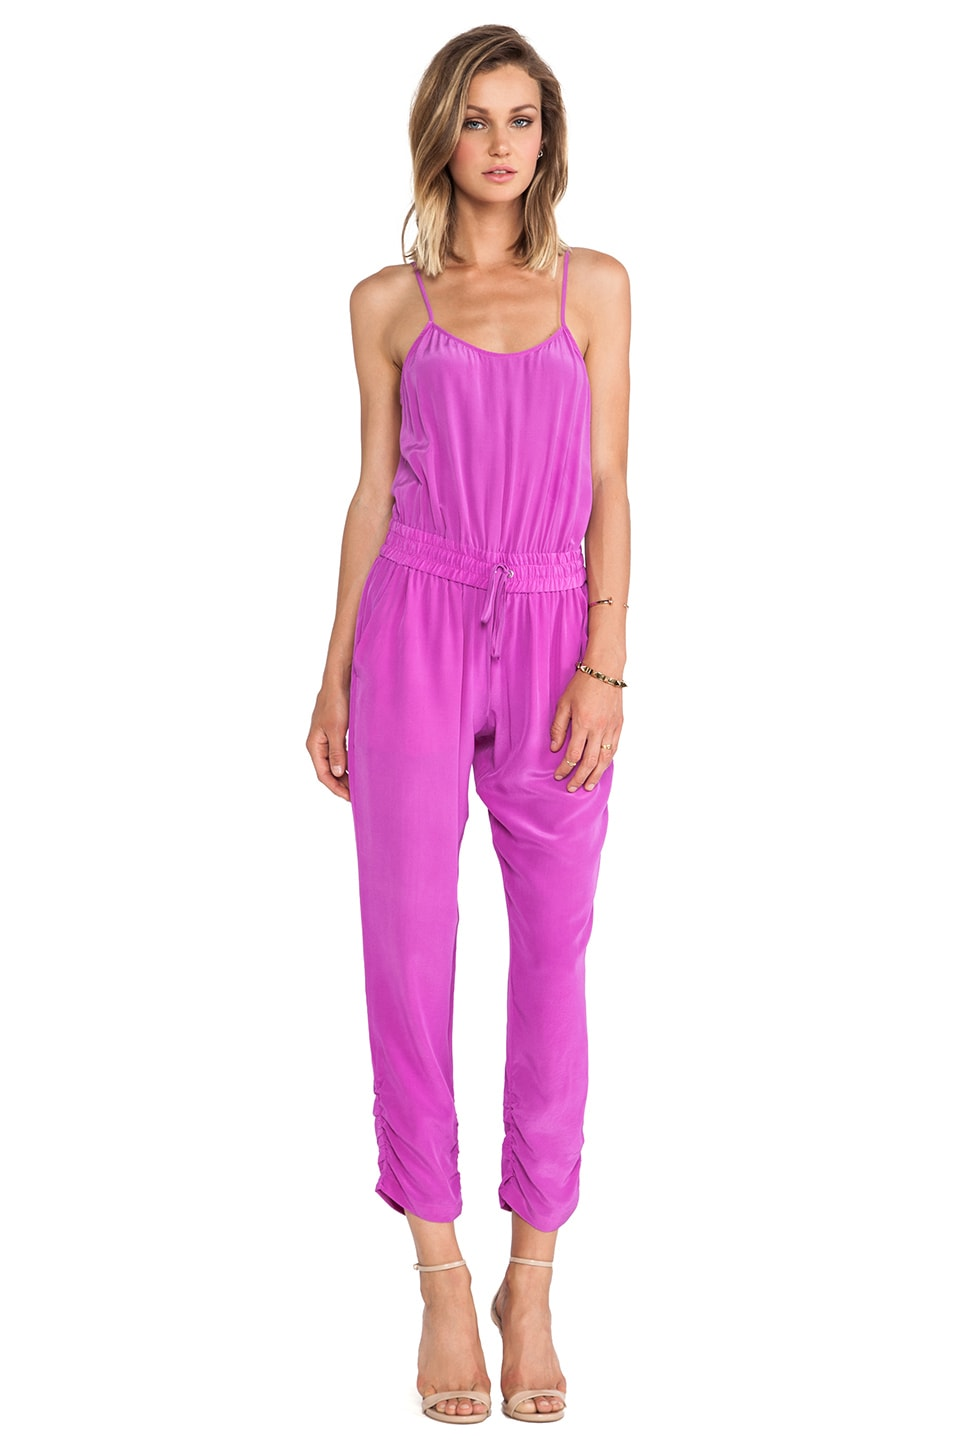 Parker Lane Jumpsuit in Electric Plum